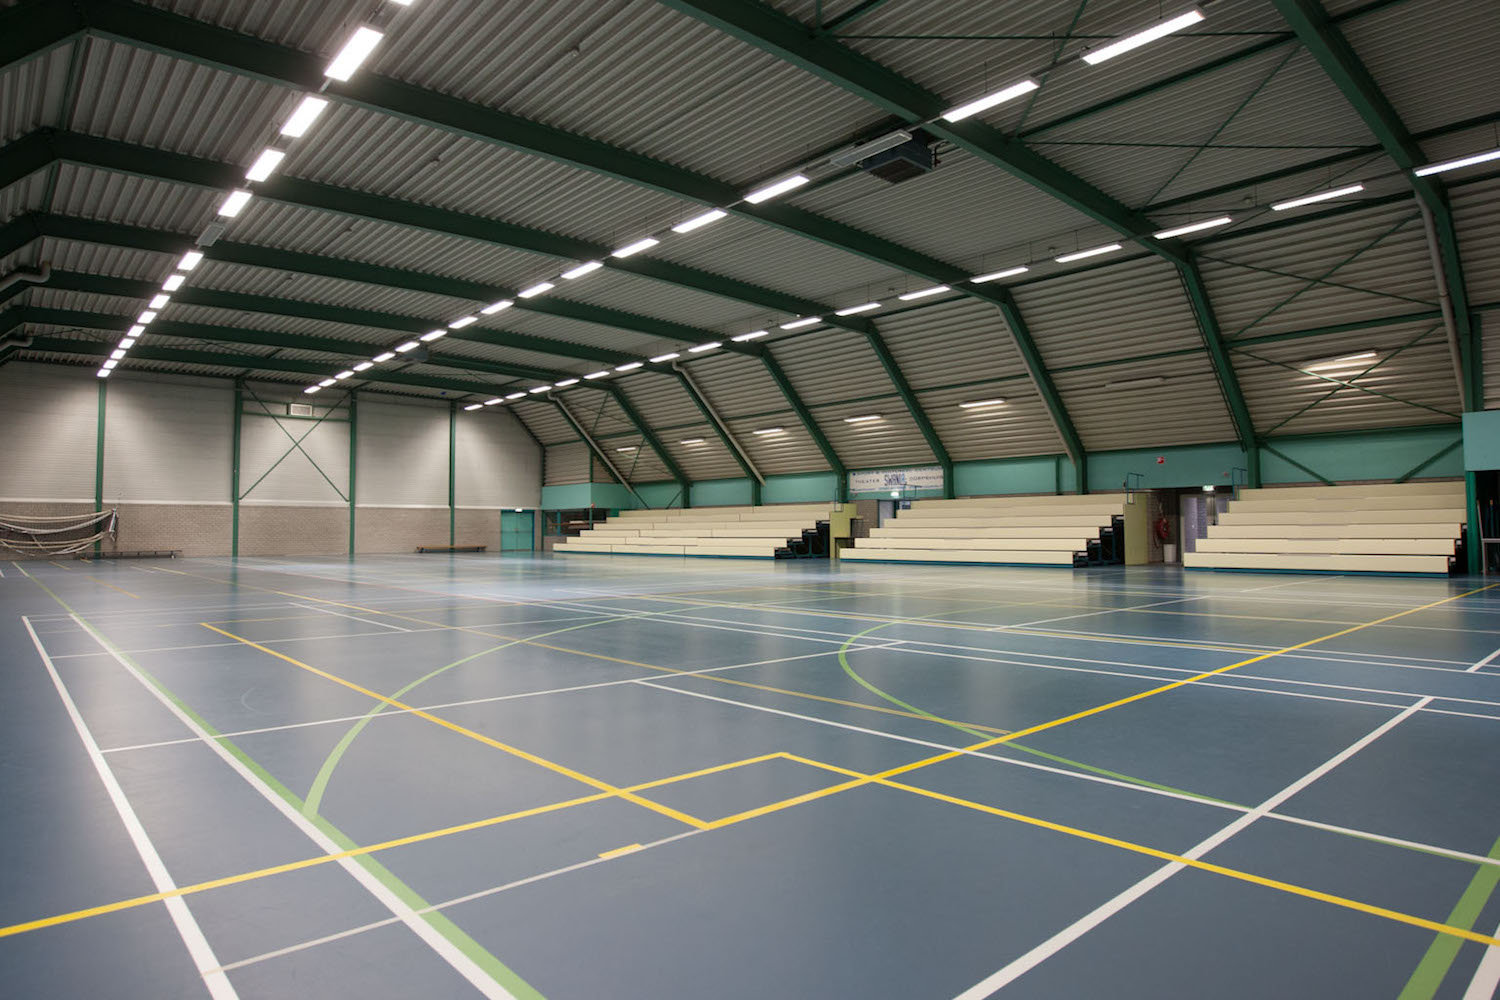 GROTE SPORTZAAL